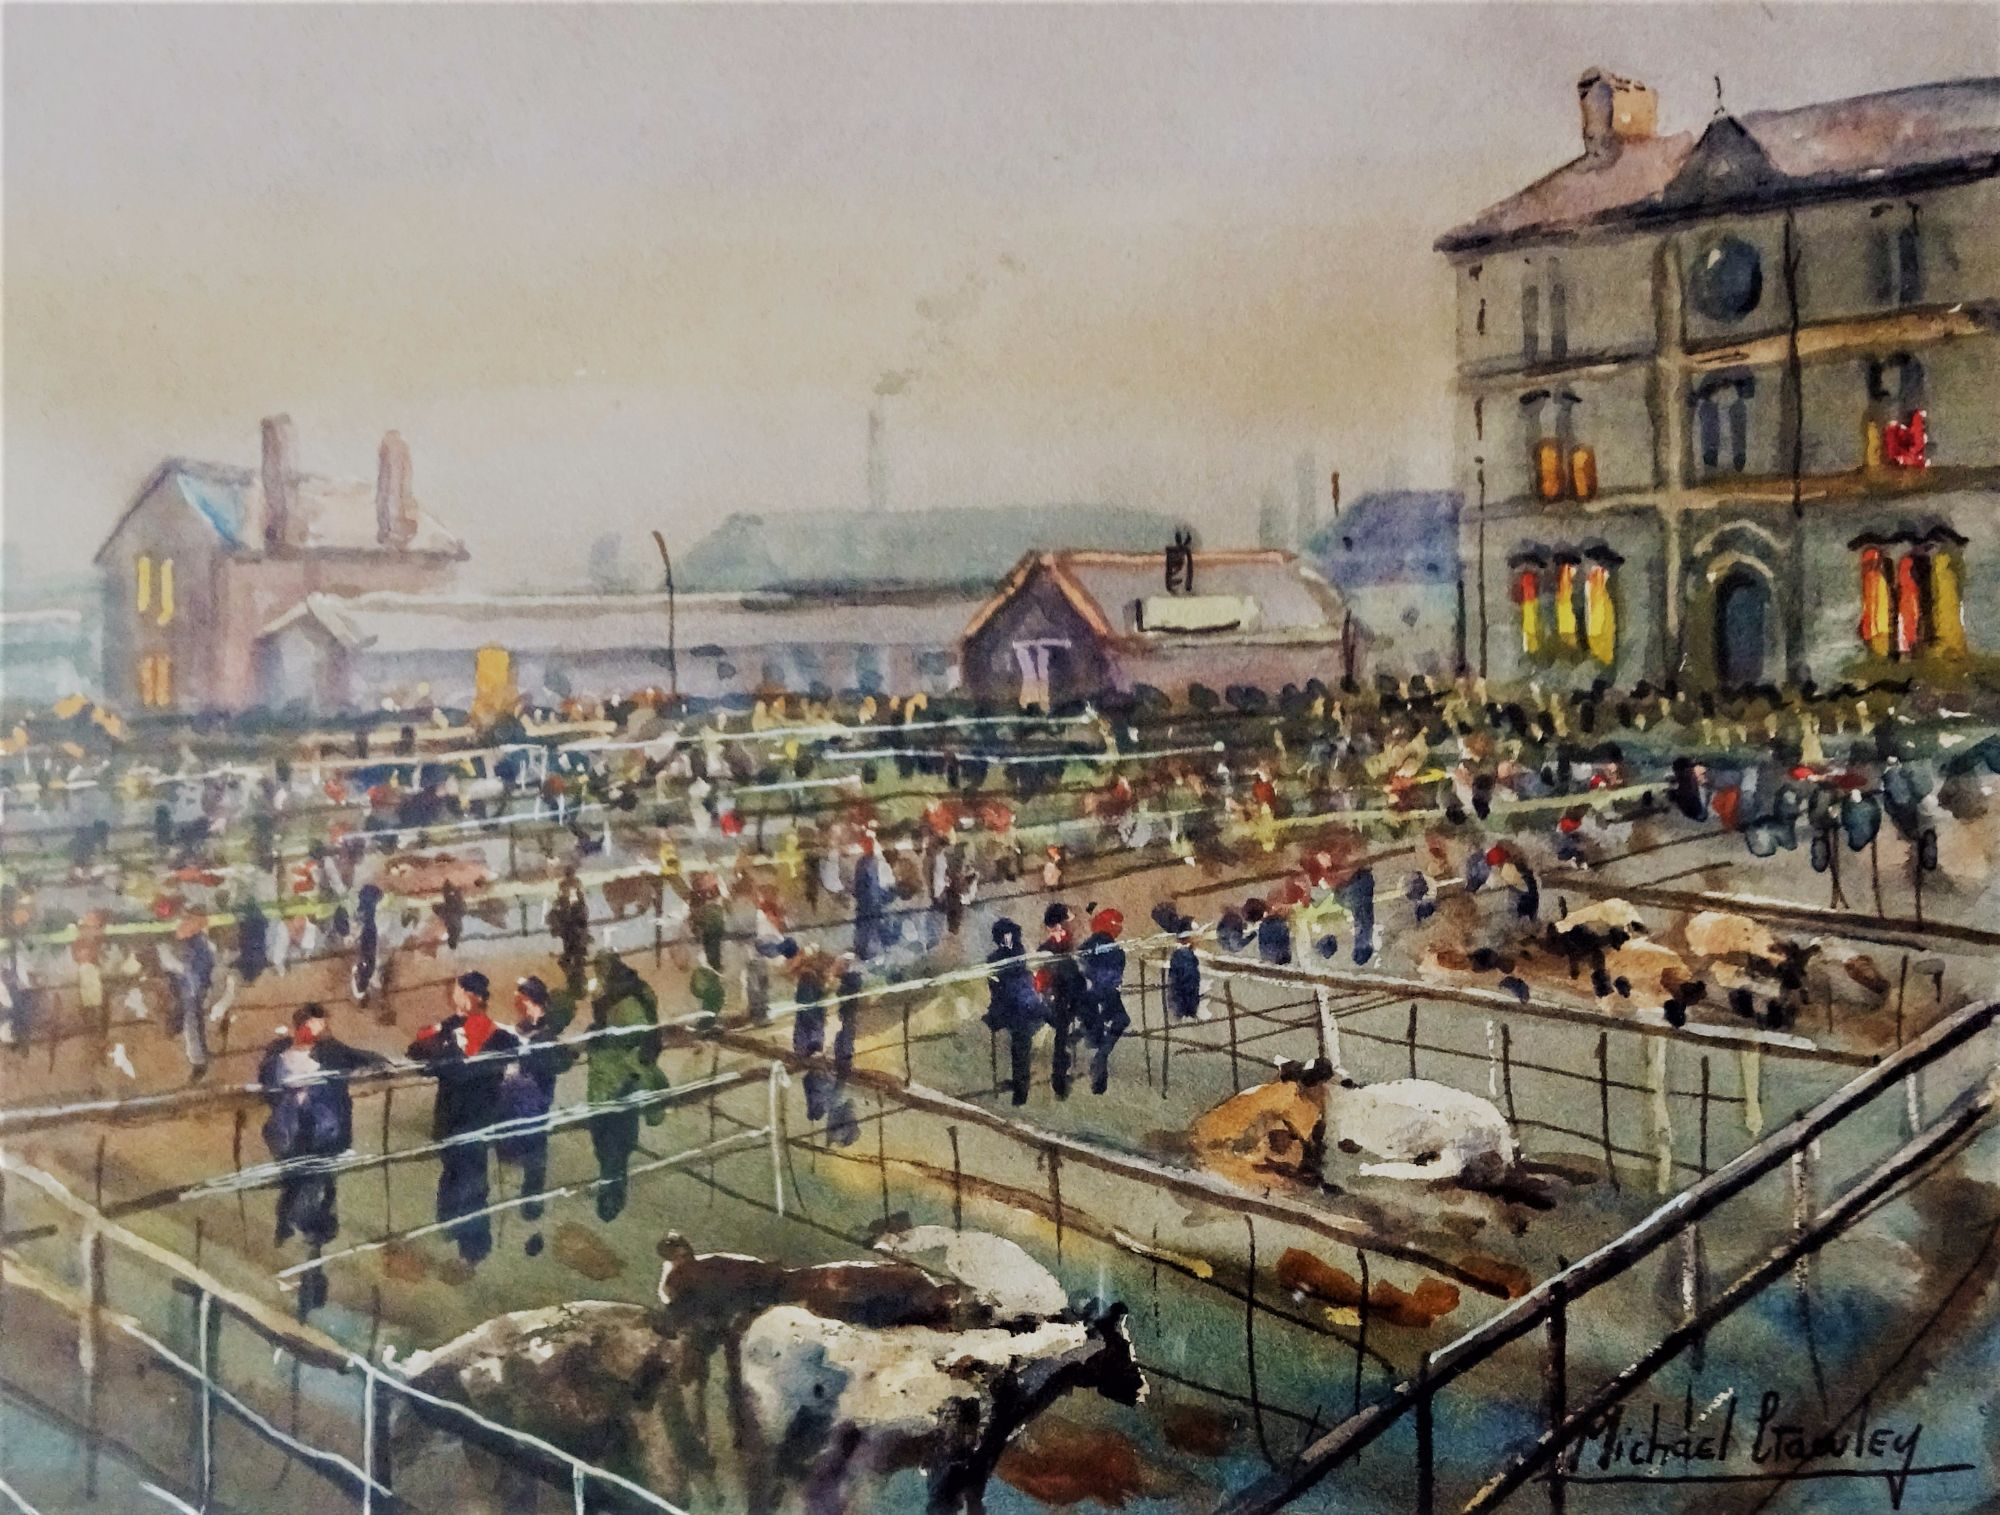 Michael Crawley, Derby Cattle Market, watercolour, c1970. Framed.